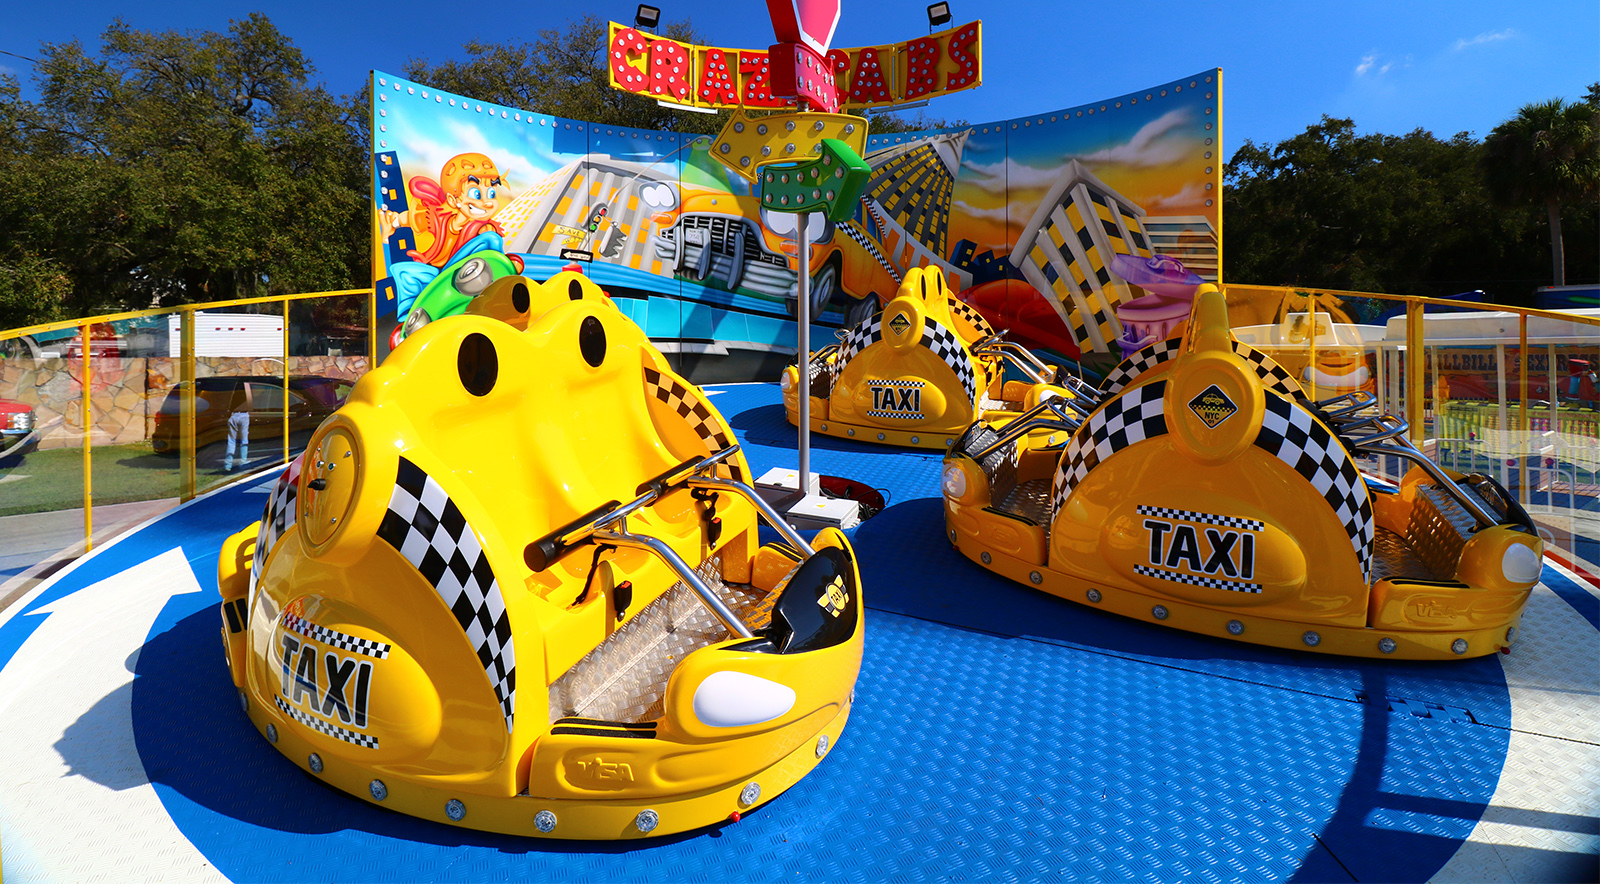 incl SHIP Details about  /4 CyGLO LIGHT UP RIDES MALL RIDES  by Giddy Up Rides BUSINESS PKG